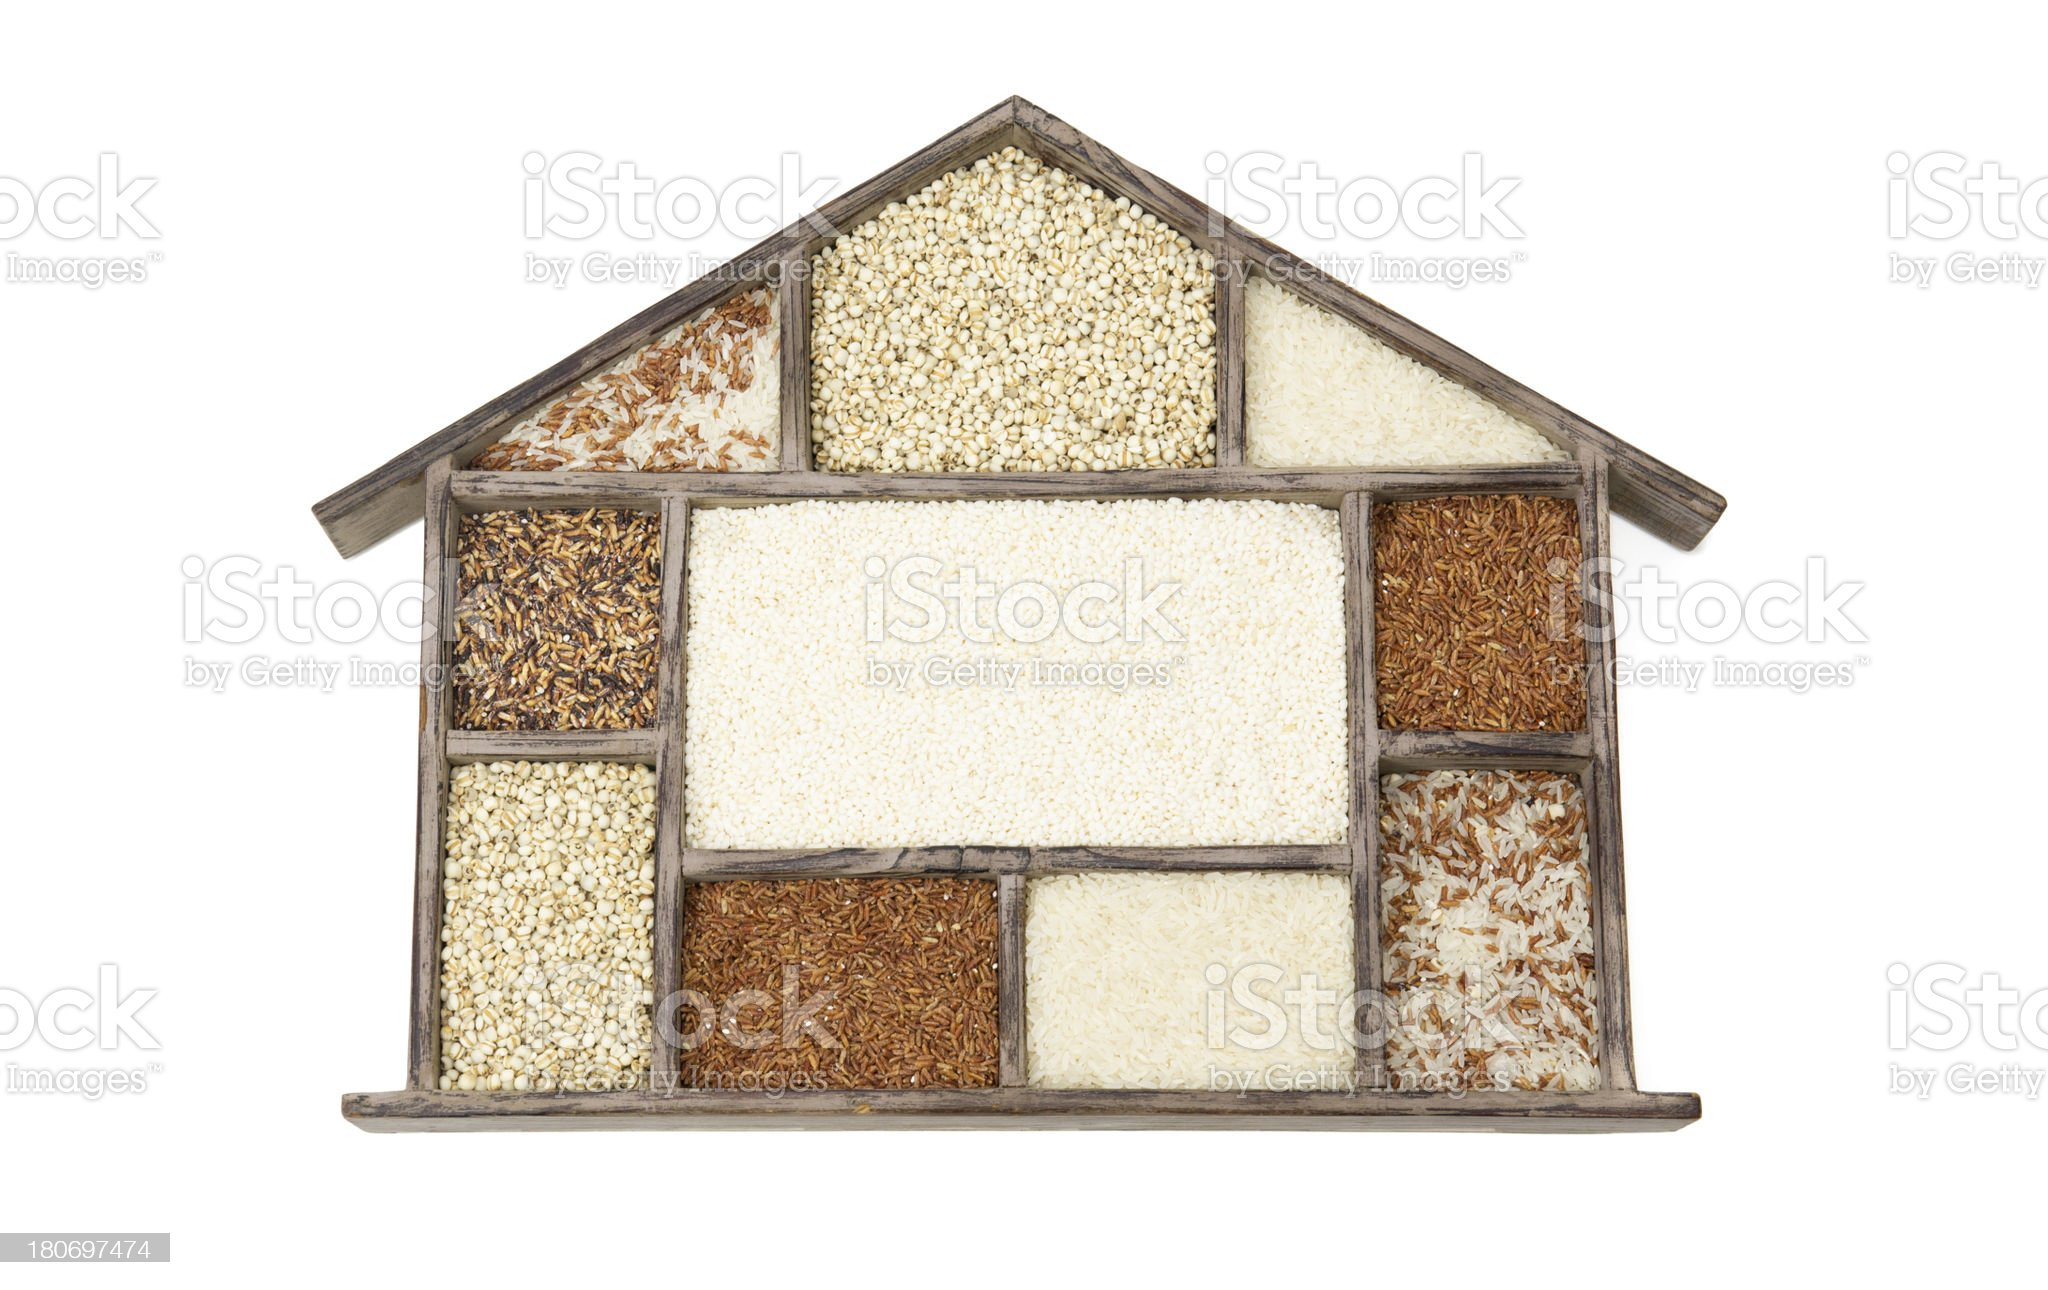 Assorted Grain in Wooden House Container royalty-free stock photo